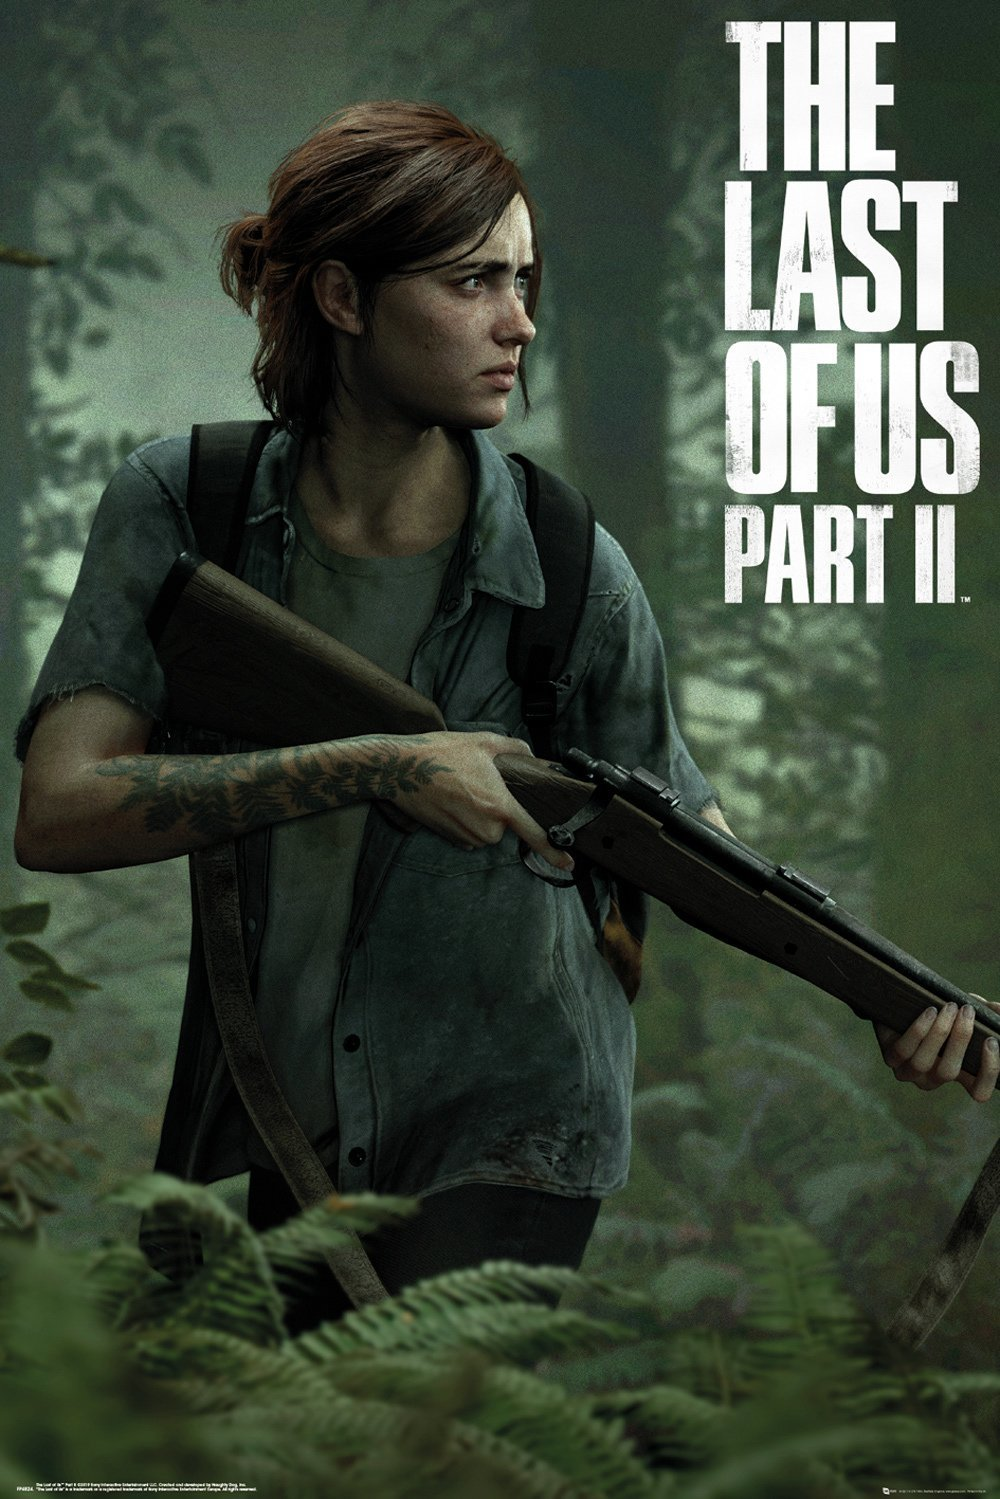 The Last of Us 2: Maxi Poster - Ellie (1022) image